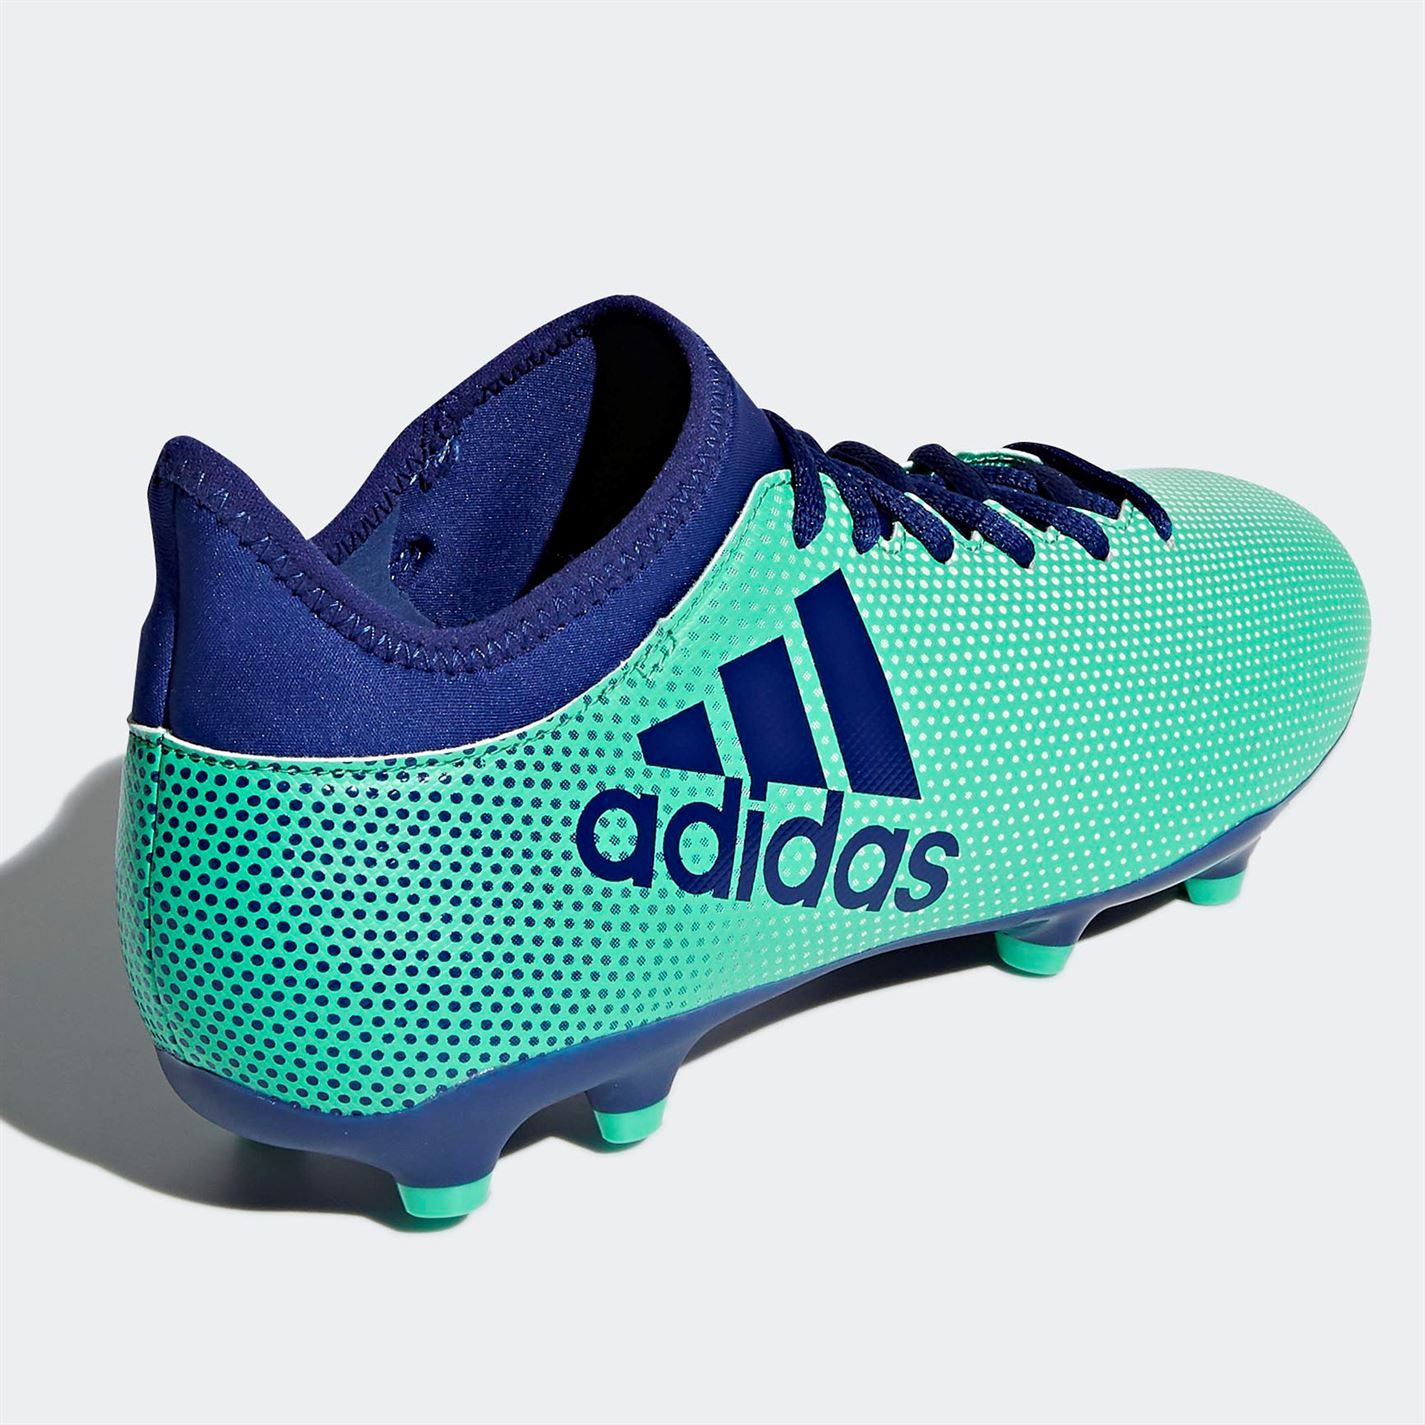 official photos bd68b 31820 ADIDAS X 17.3 FG Firm Ground Football Boots Mens Green/Ink Soccer Shoes  Cleats